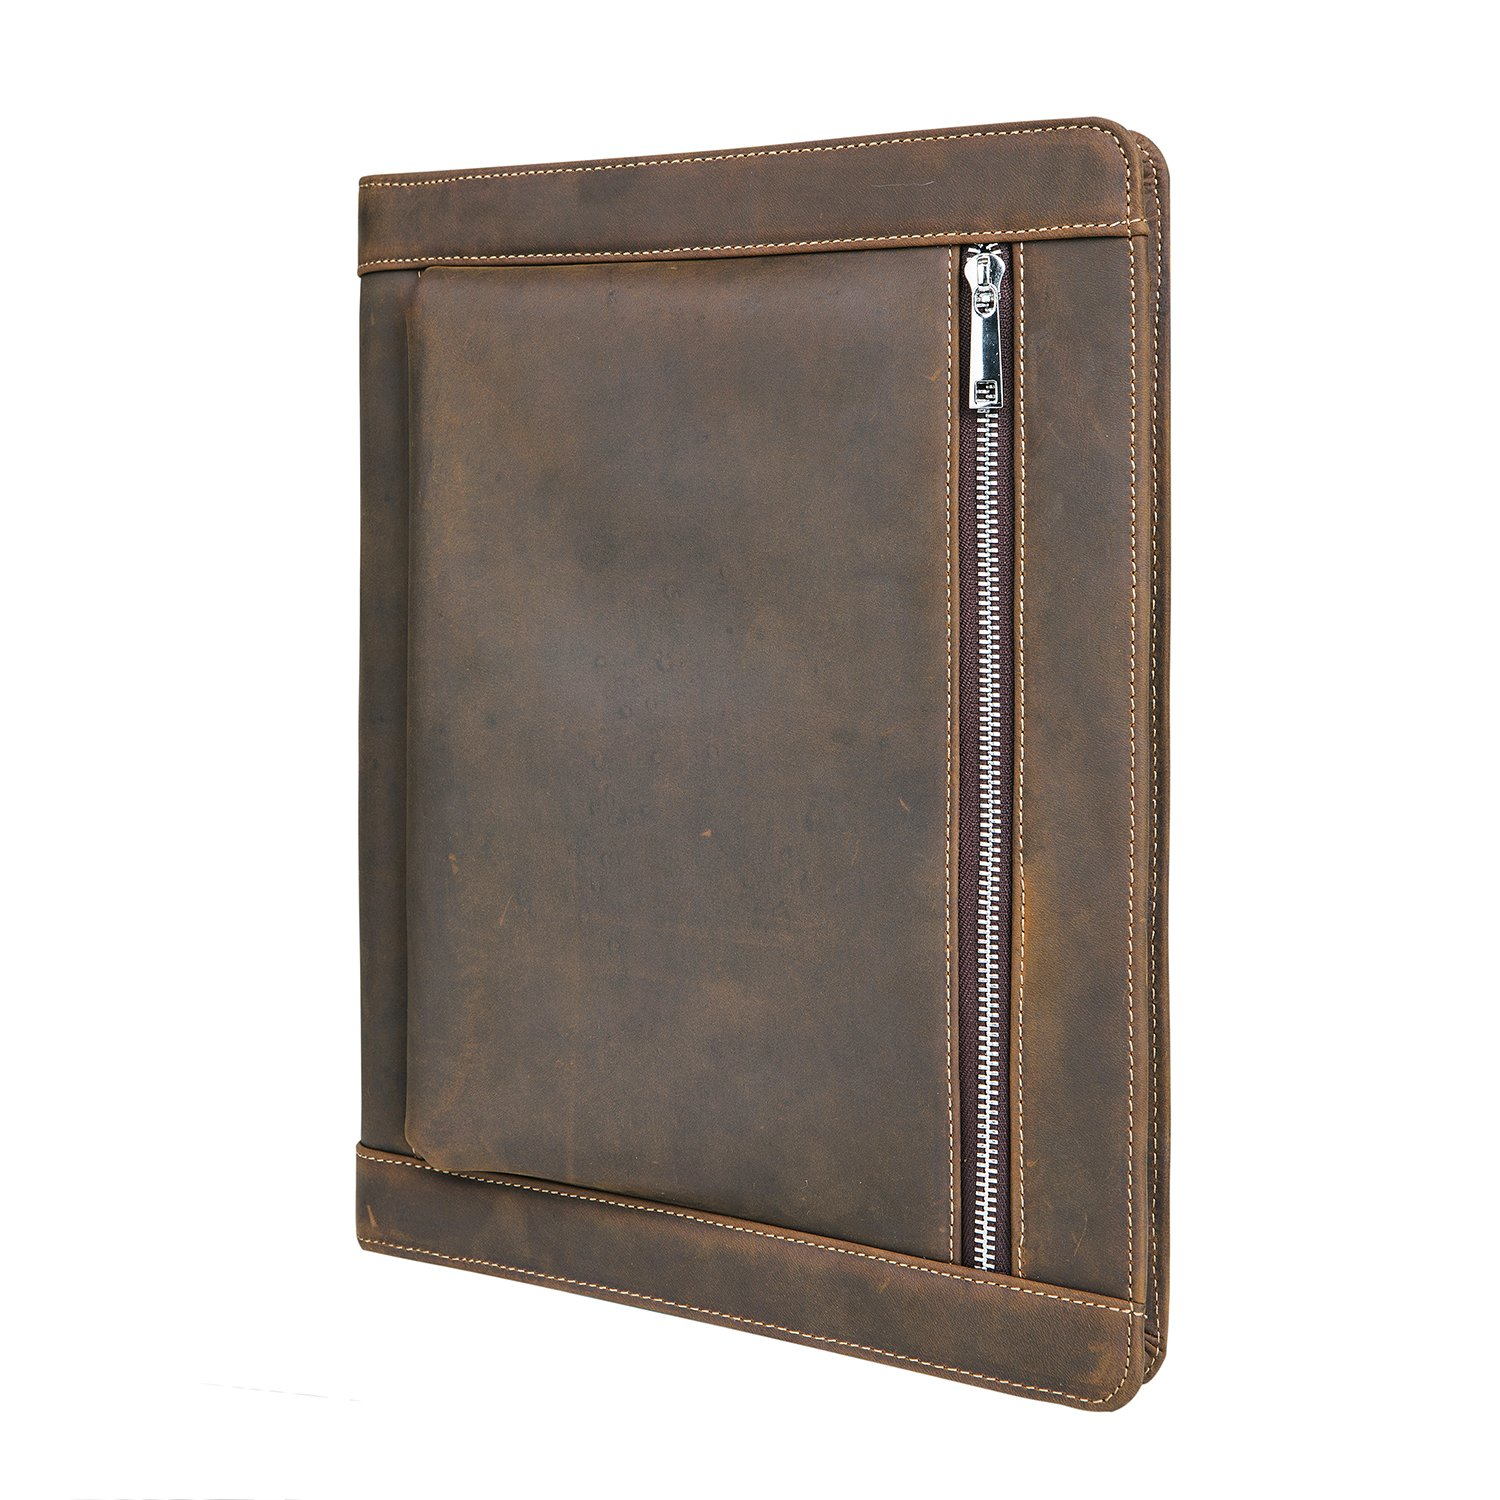 Vintage Portfolio Organizer Full Grain Leather Crazy-Horse Padfolio Case for iPad Air/iPad Pro/Microsoft Surface Pro Portfolio with Letter Size(A4) Paper (NEW iPad Pro 10.5 Inch)